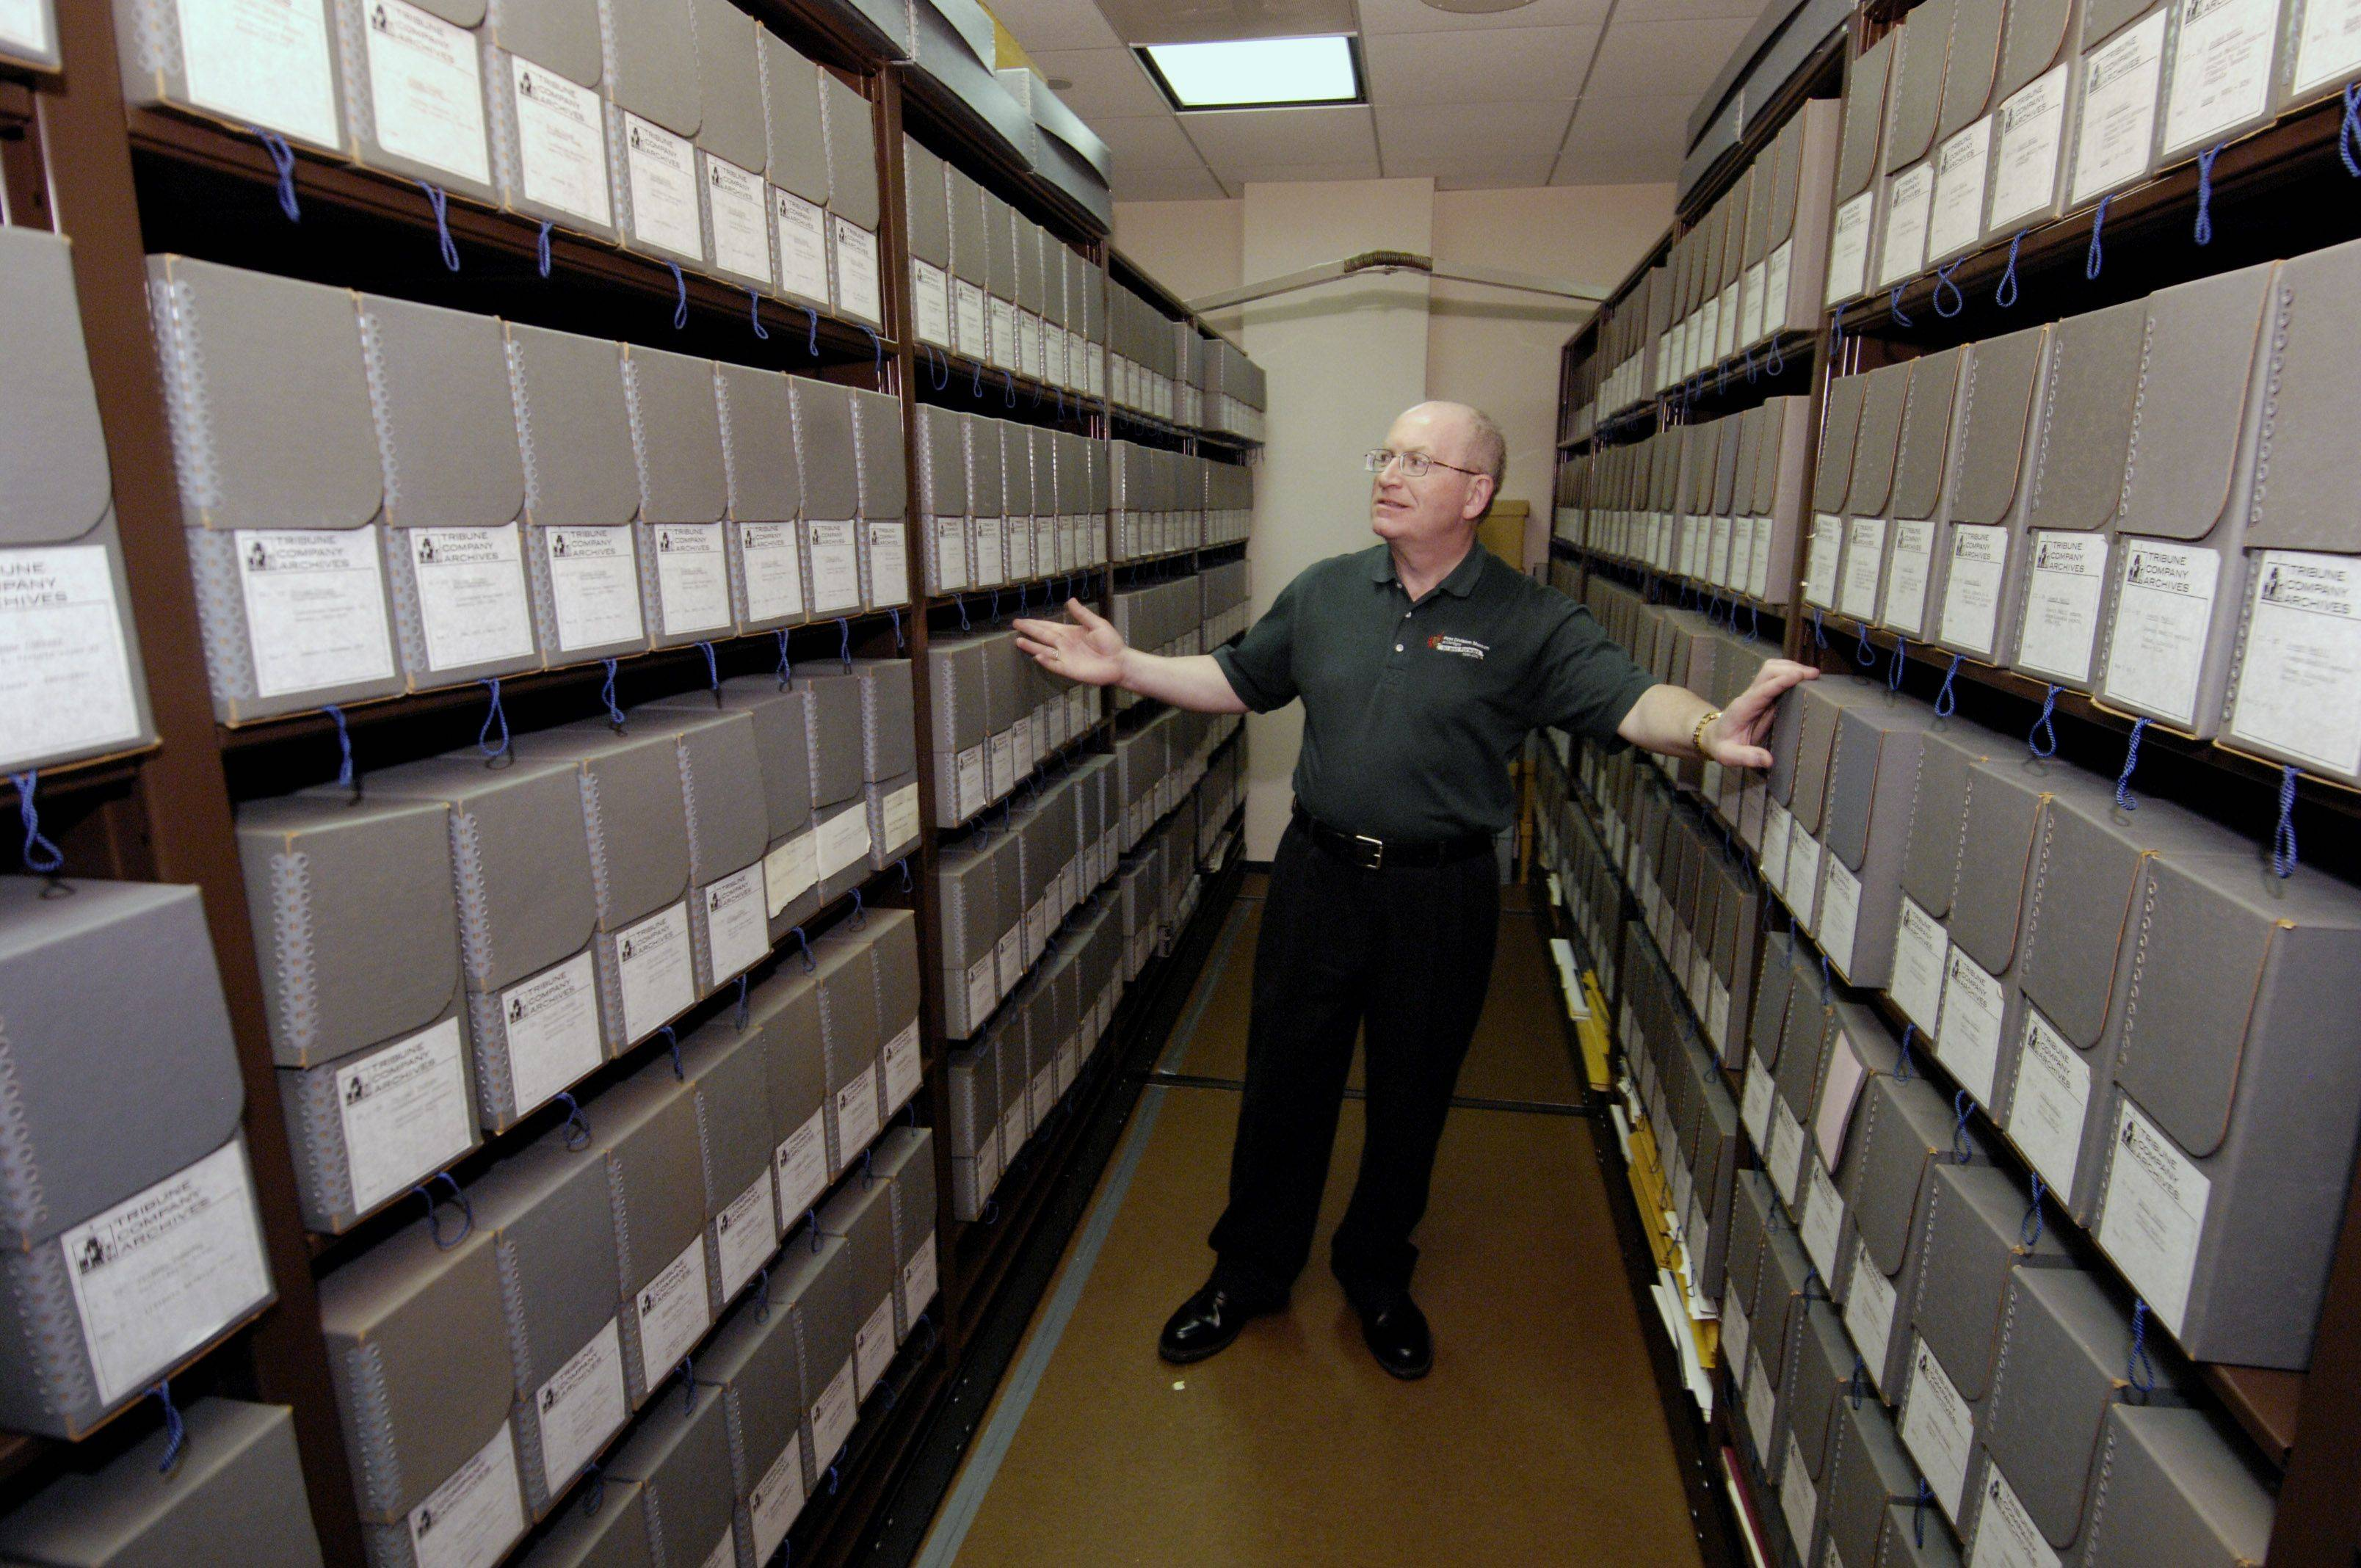 Eric Gillespie shows off some of the boxes containing the McCormick papers, that are under lock and key, in the Colonel Robert R. McCormick Research Center.